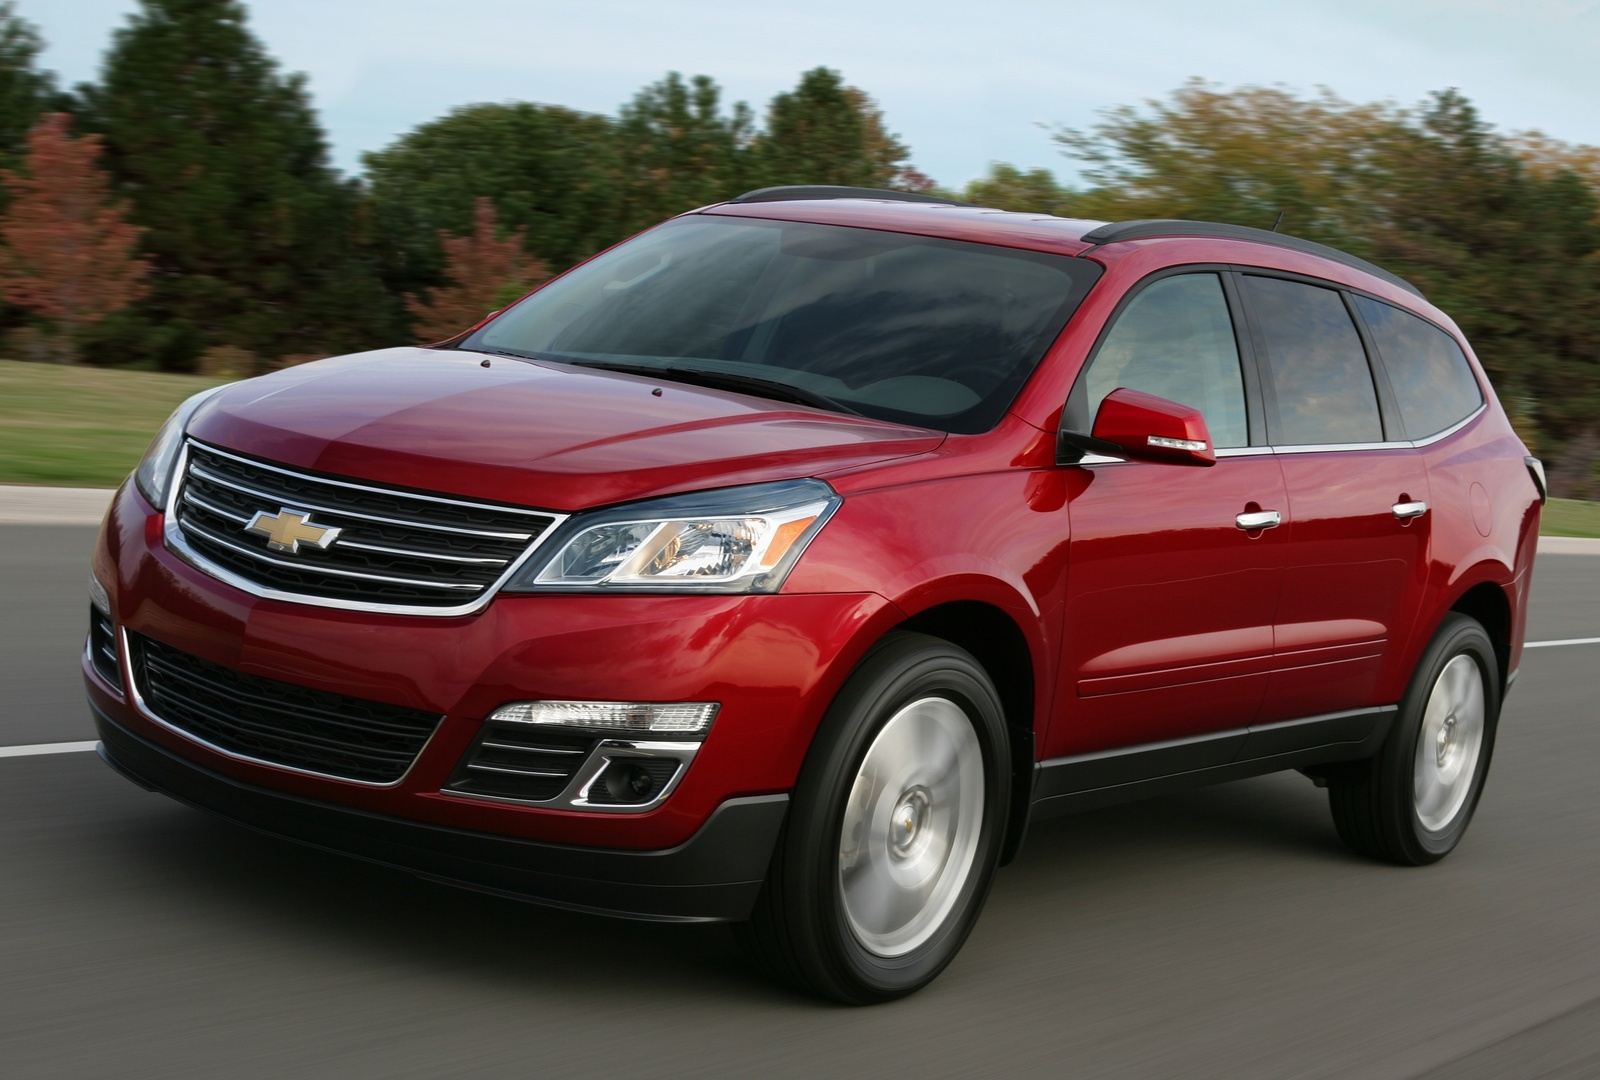 2015 Chevrolet Traverse - Review - CarGurus